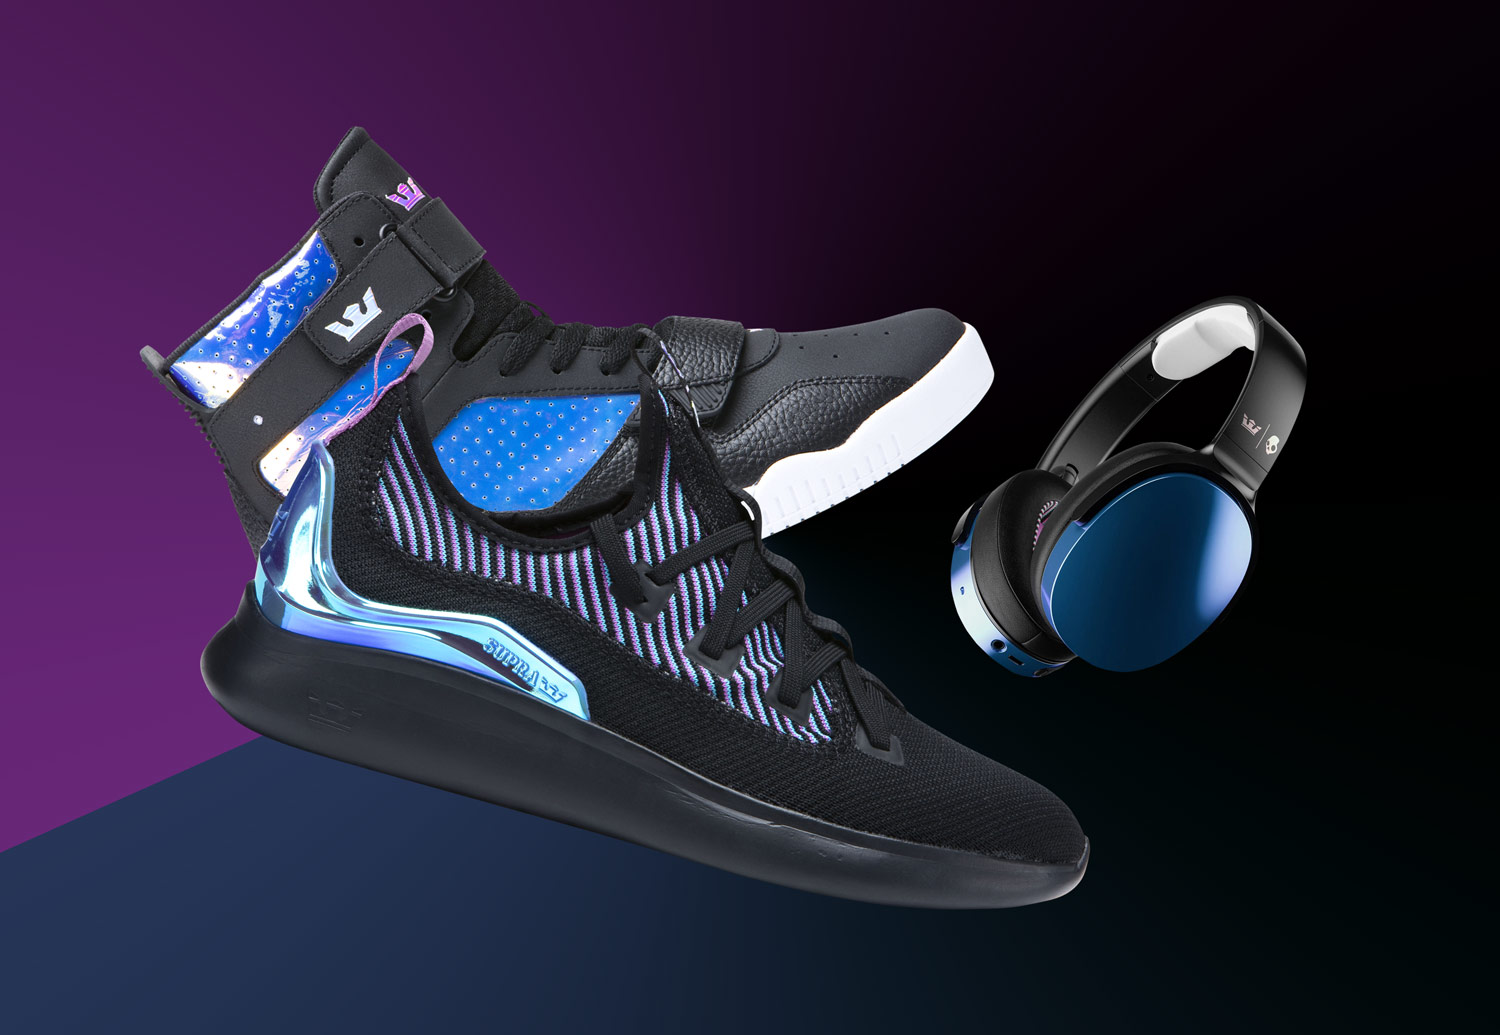 Supra x Scullcandy — Supra Factor — Supra Breaker — Scullcandy Hesh 3 Phones